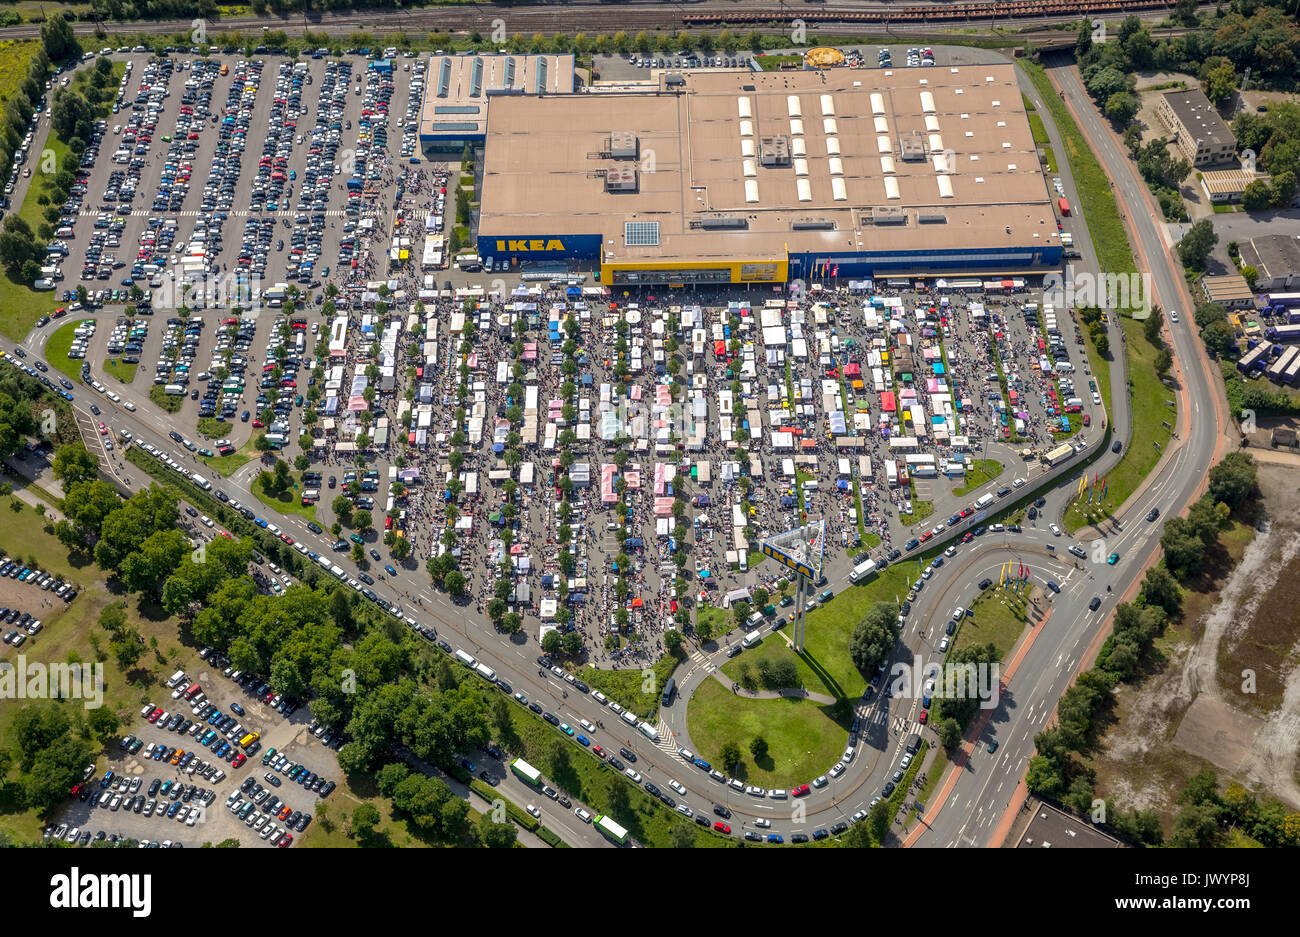 Flohmarkt Duisburg Flee Stockfotos And Flee Bilder Alamy